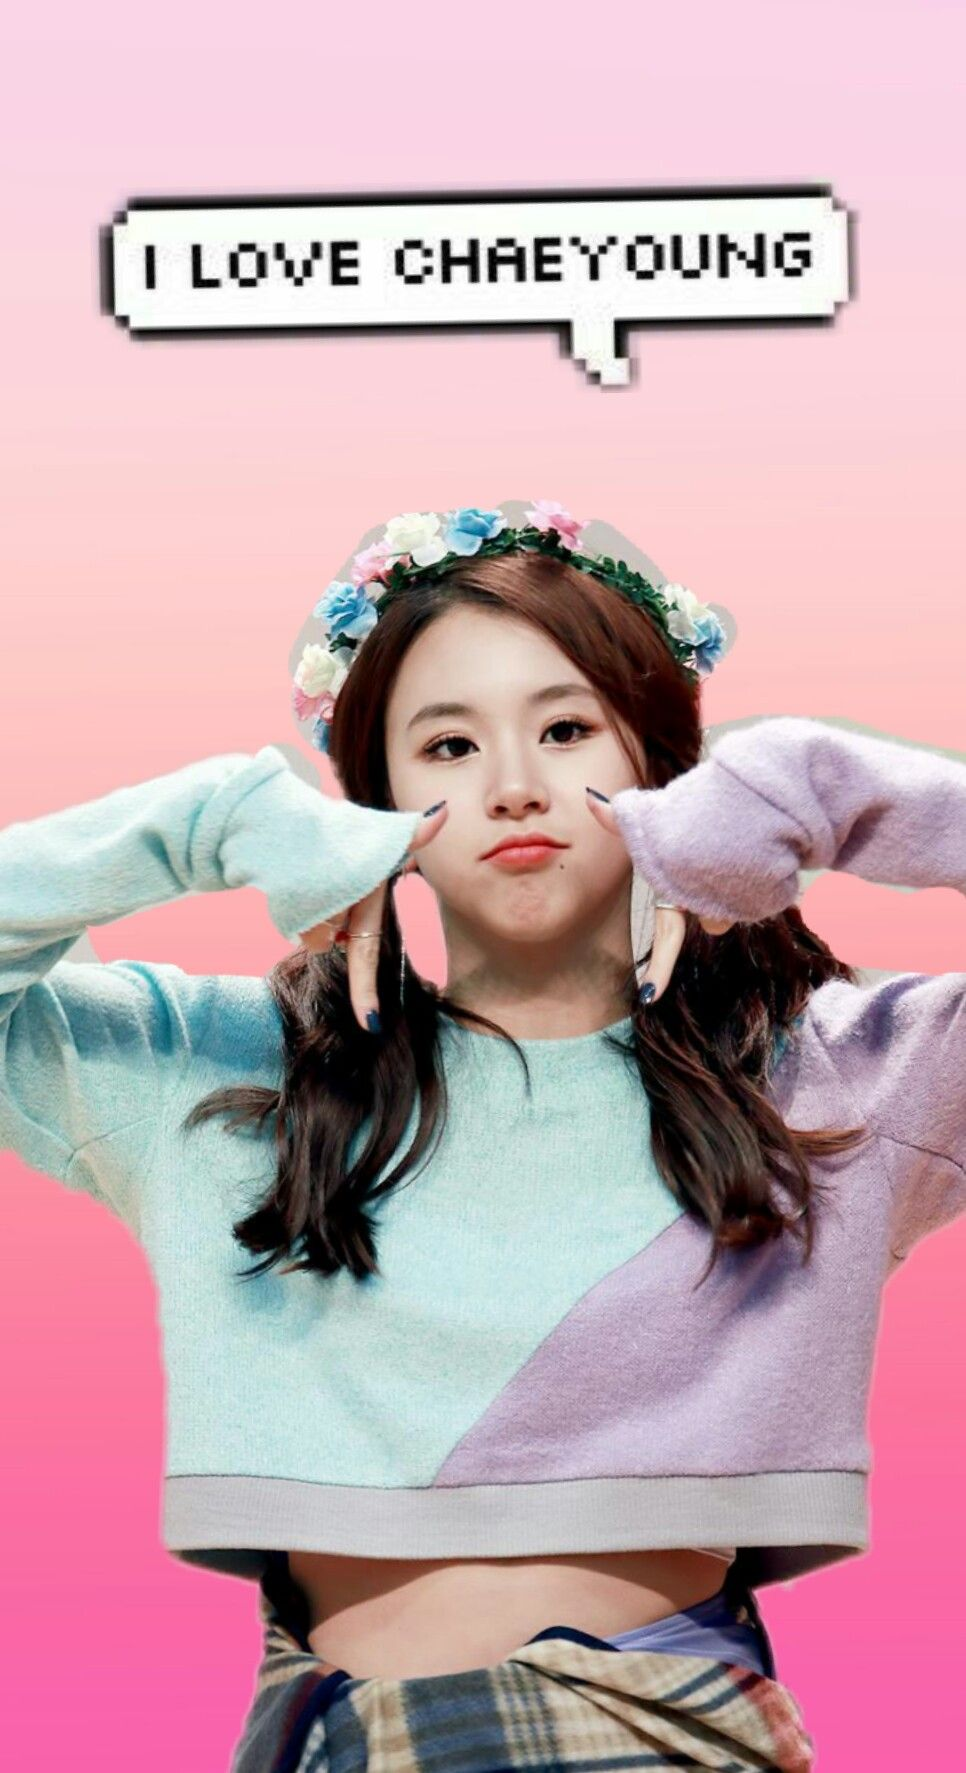 Chaeyoung Twice Wallpaper Image By Luanna